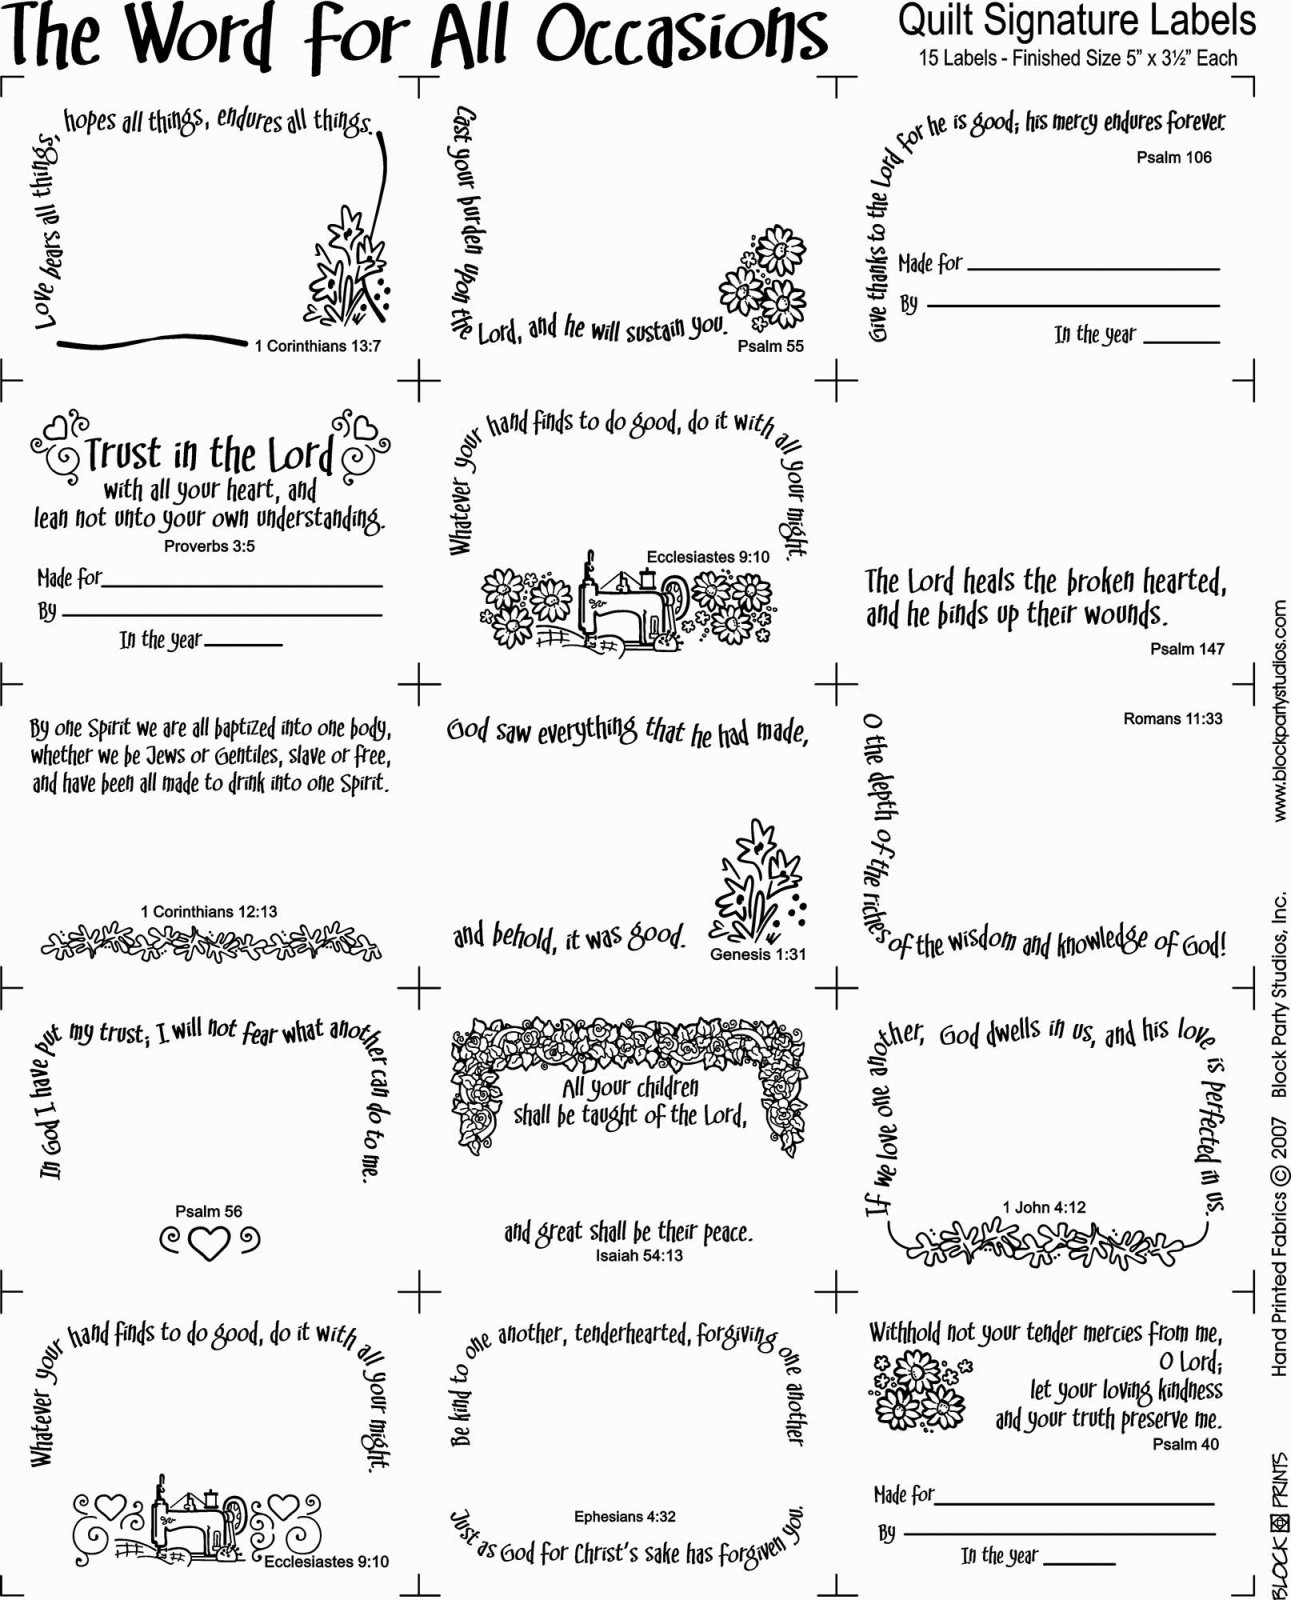 Word for all Occasions Quilt Fabric Panel